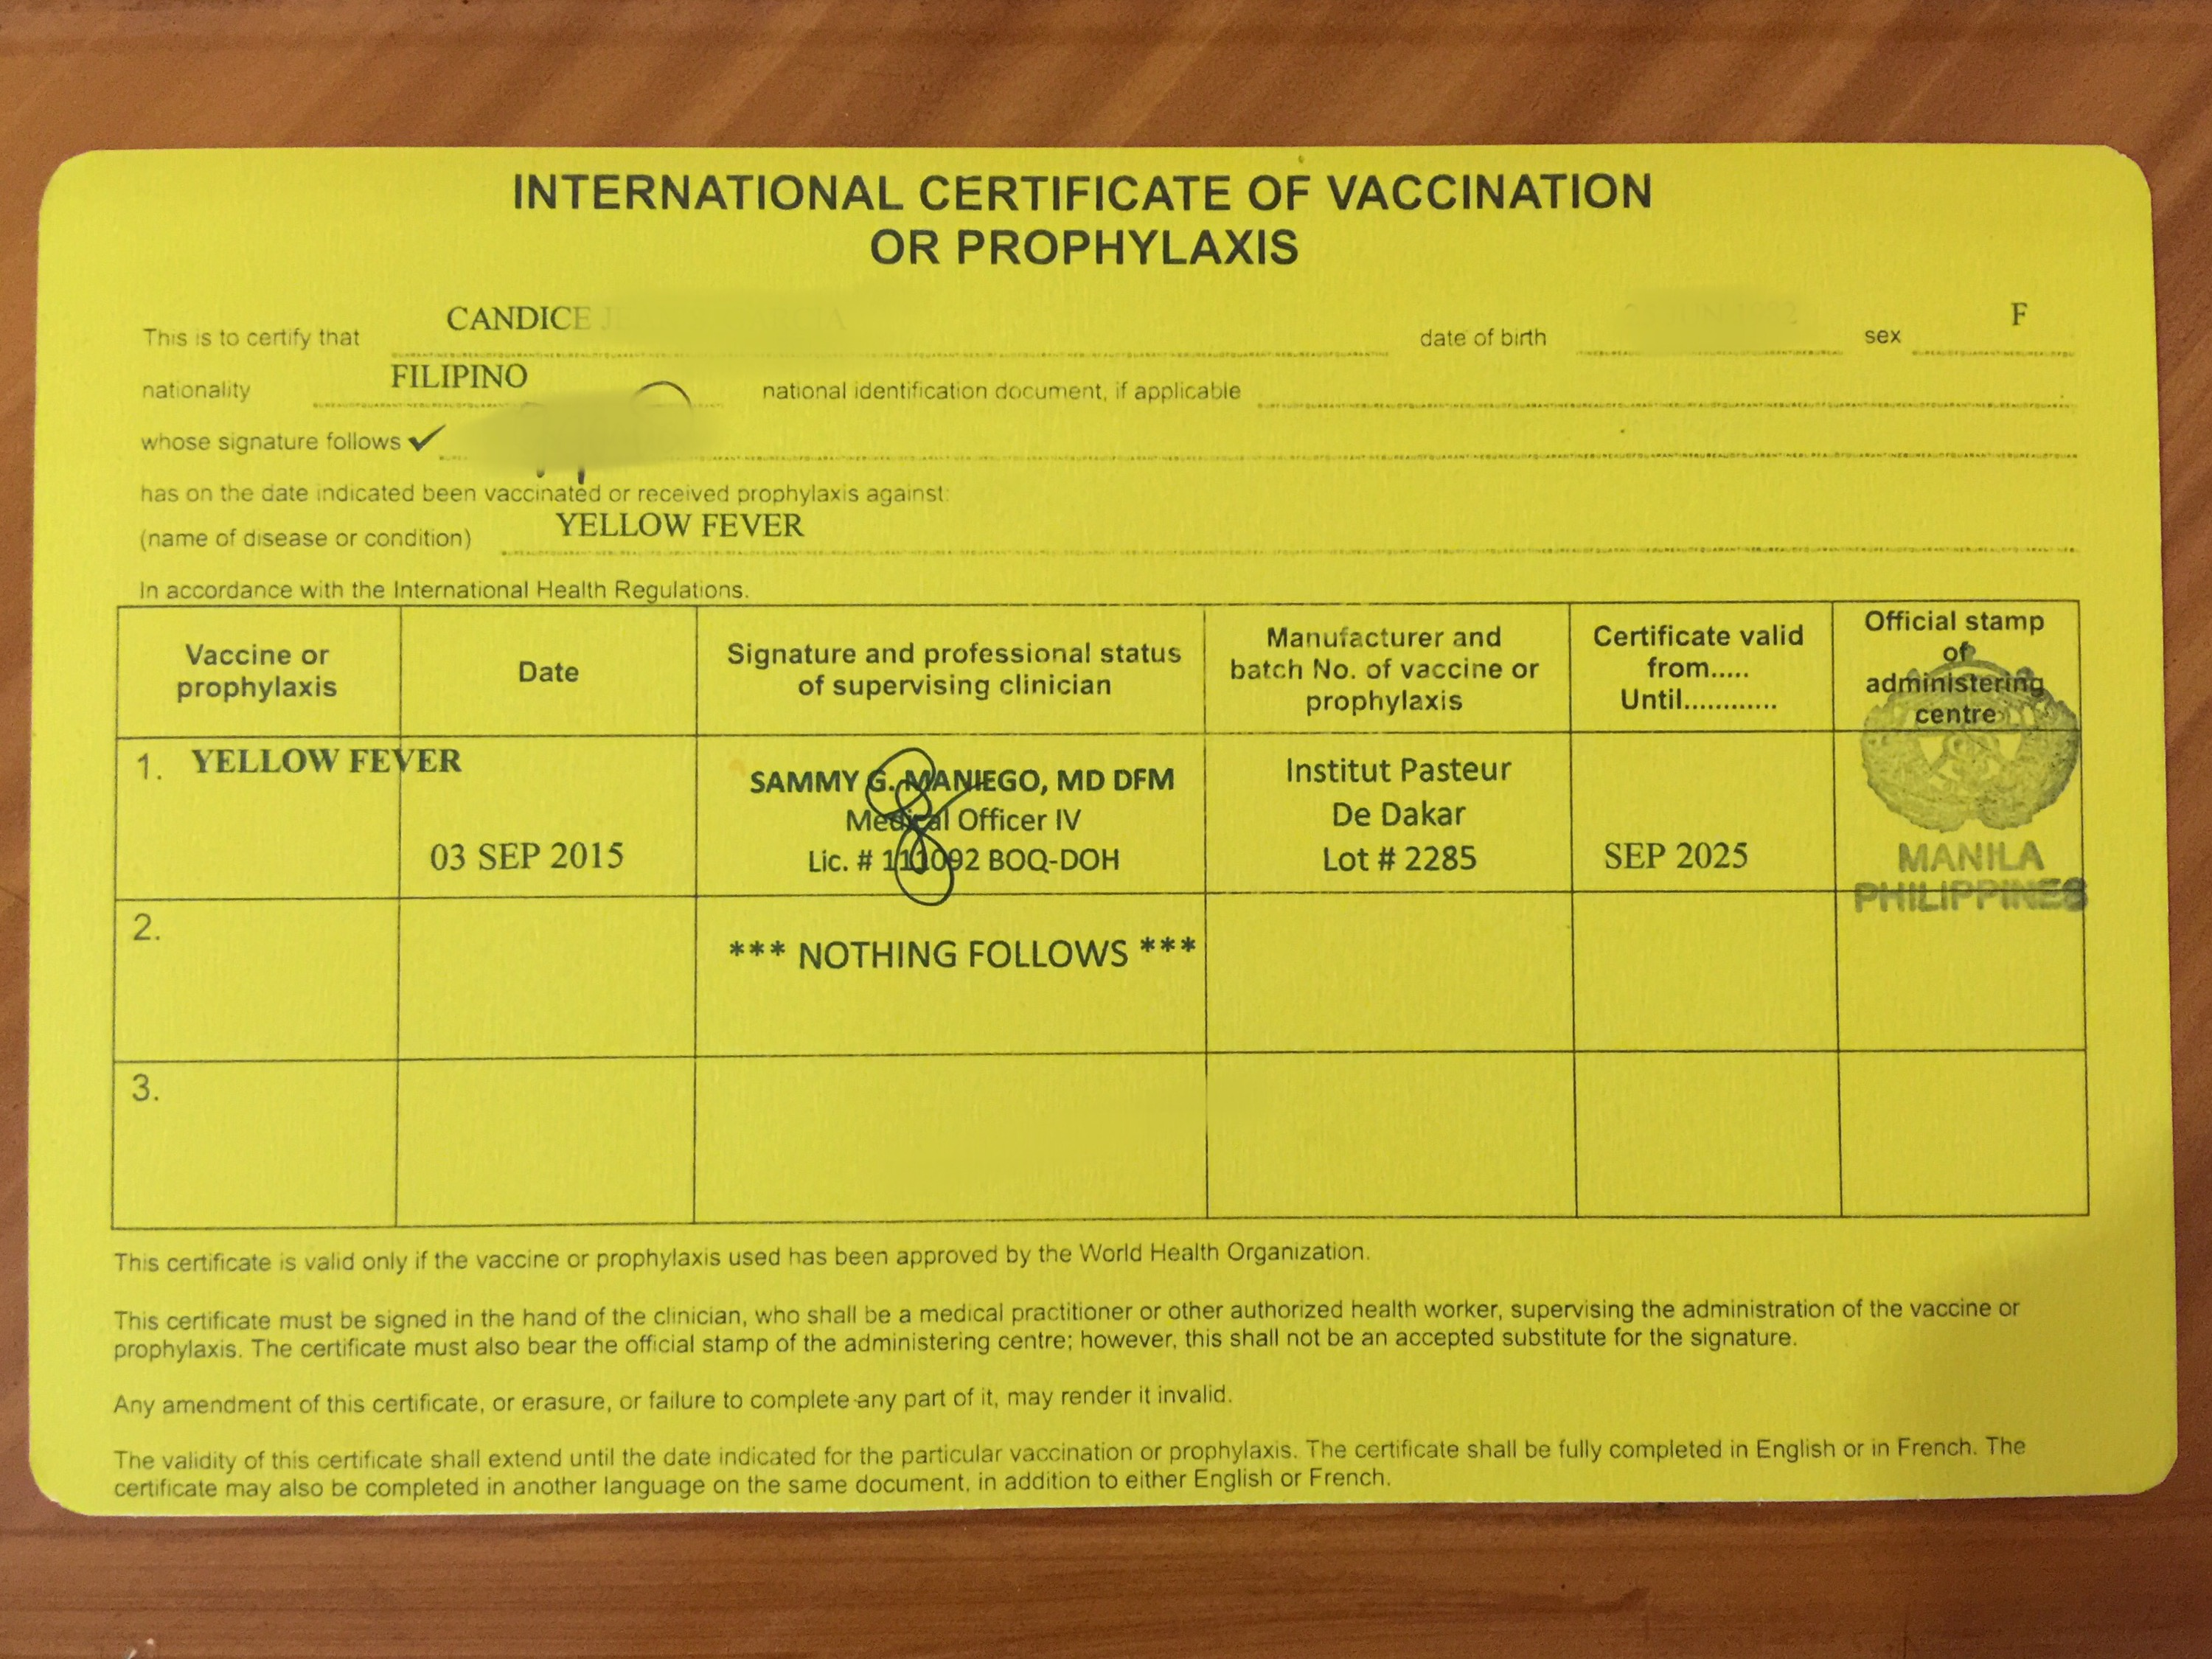 Yellow Fever Vaccination in Mumbai, India